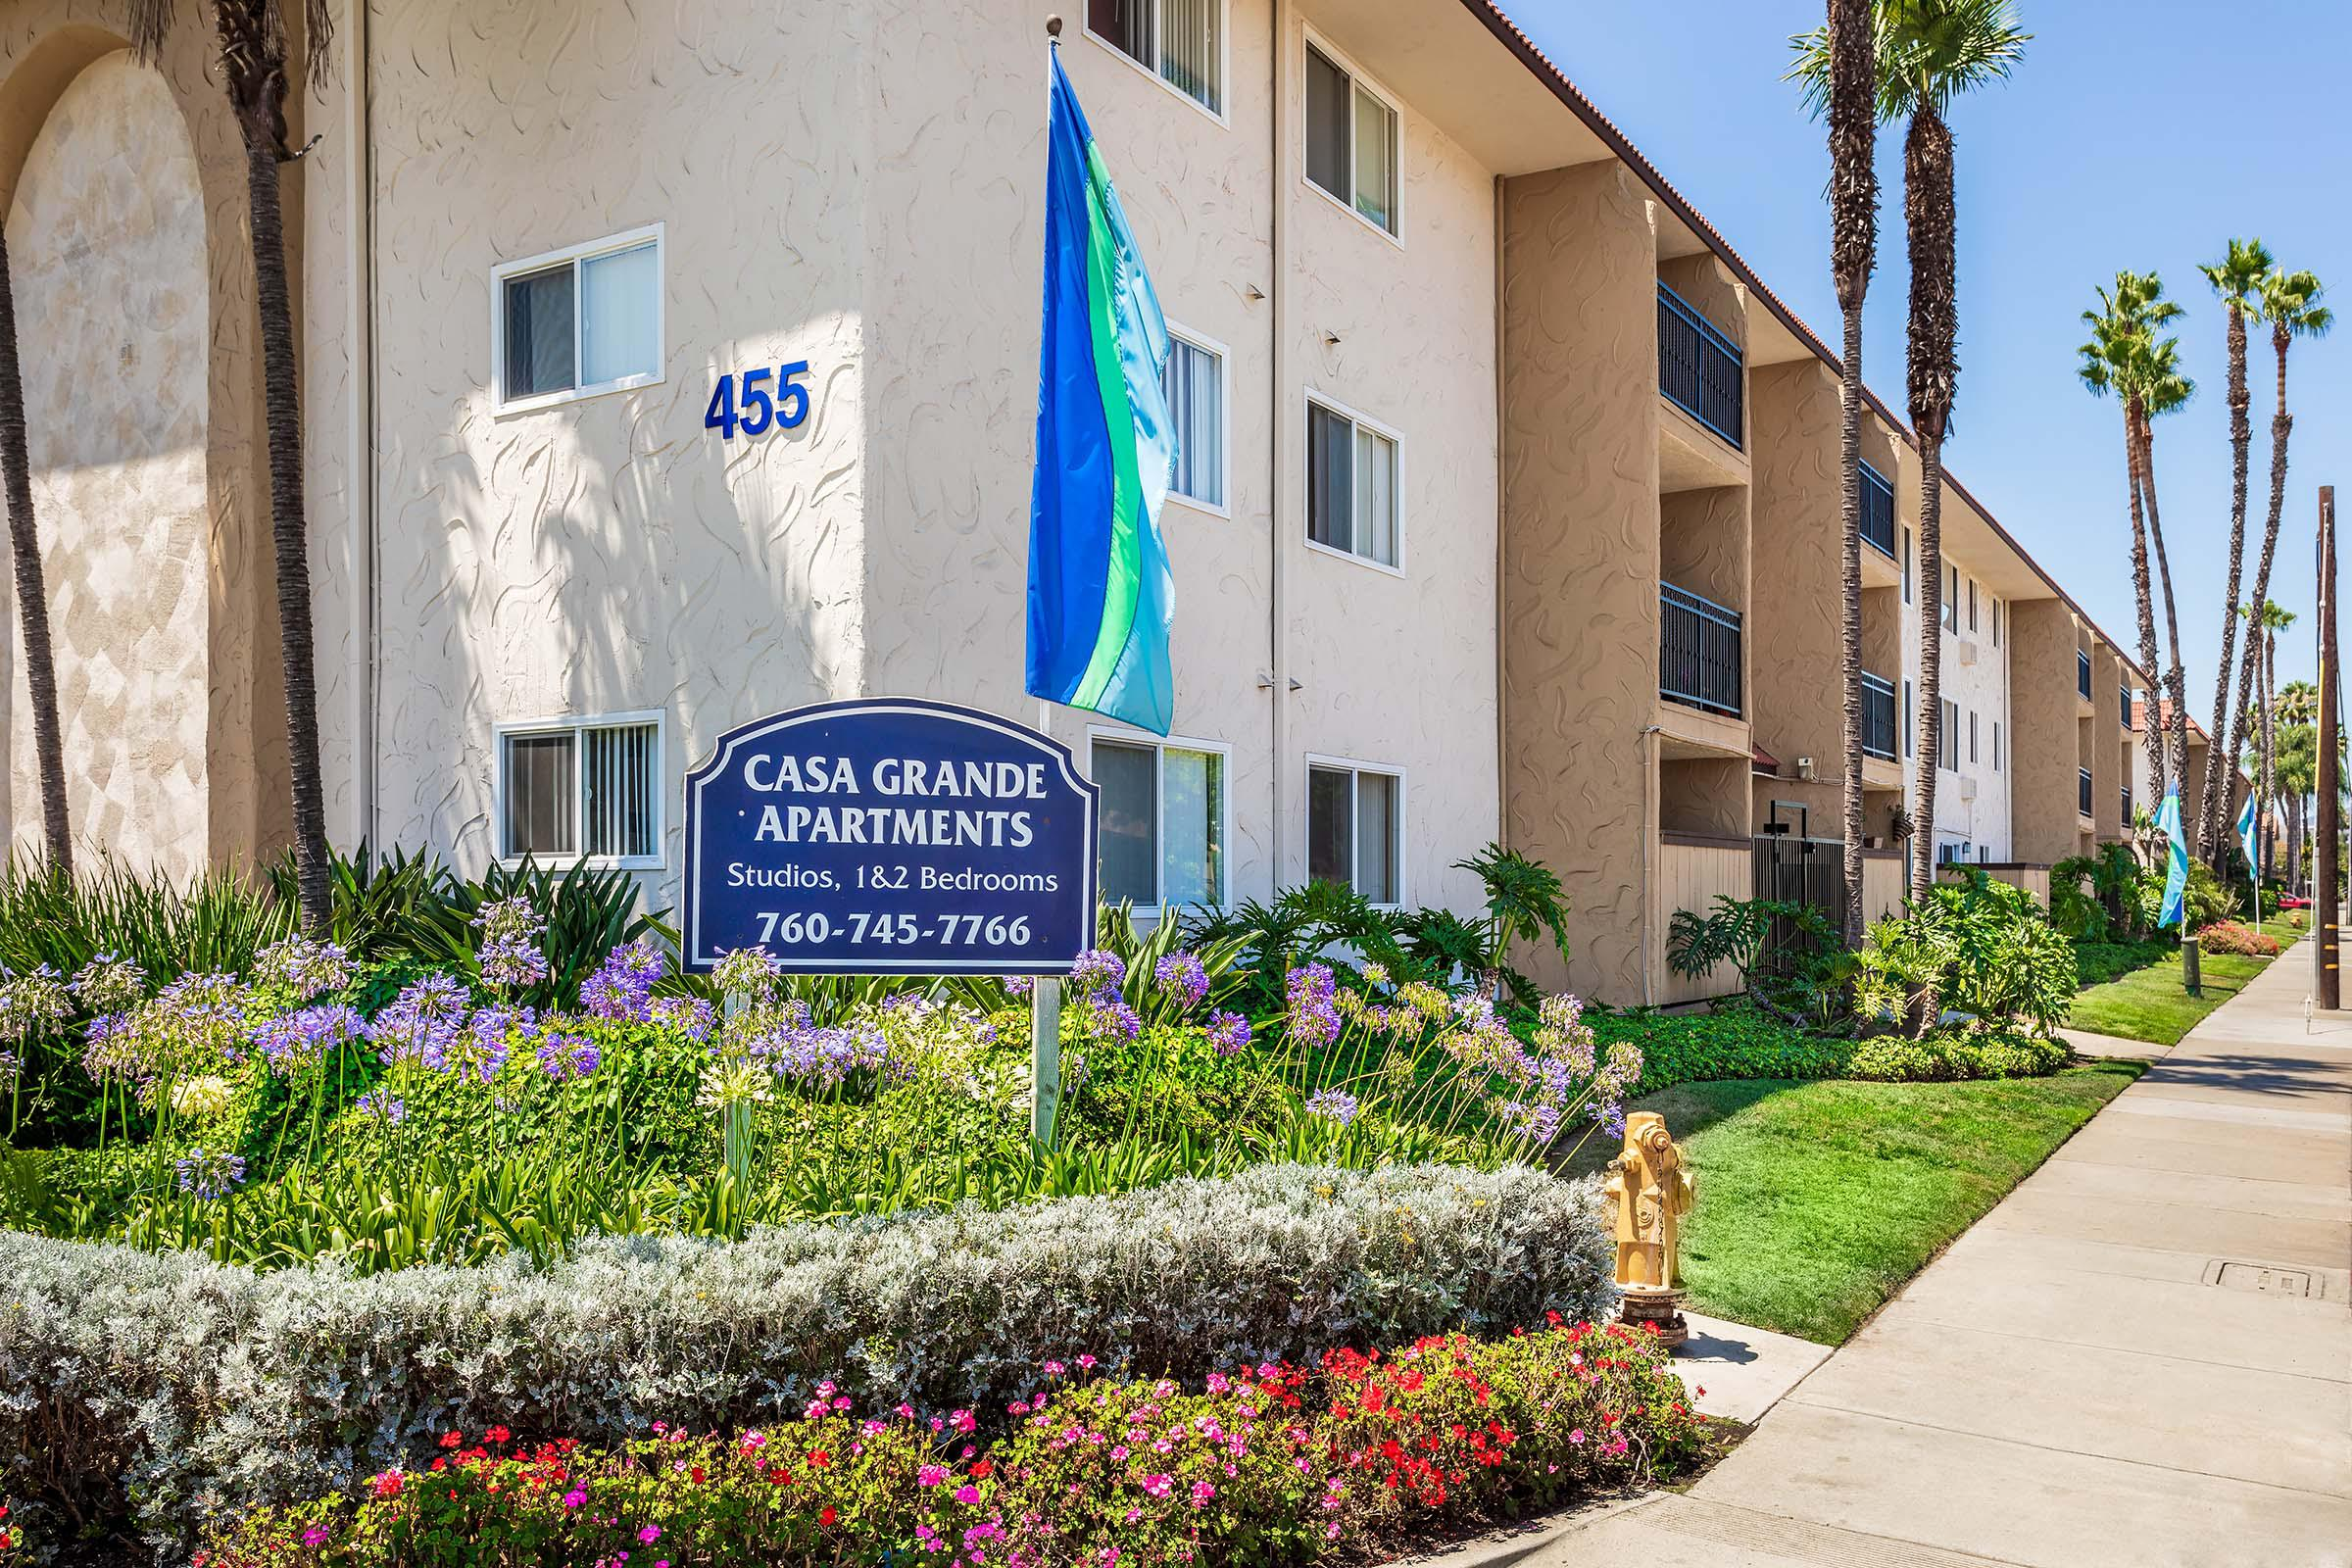 Picture of Casa Grande Apartments